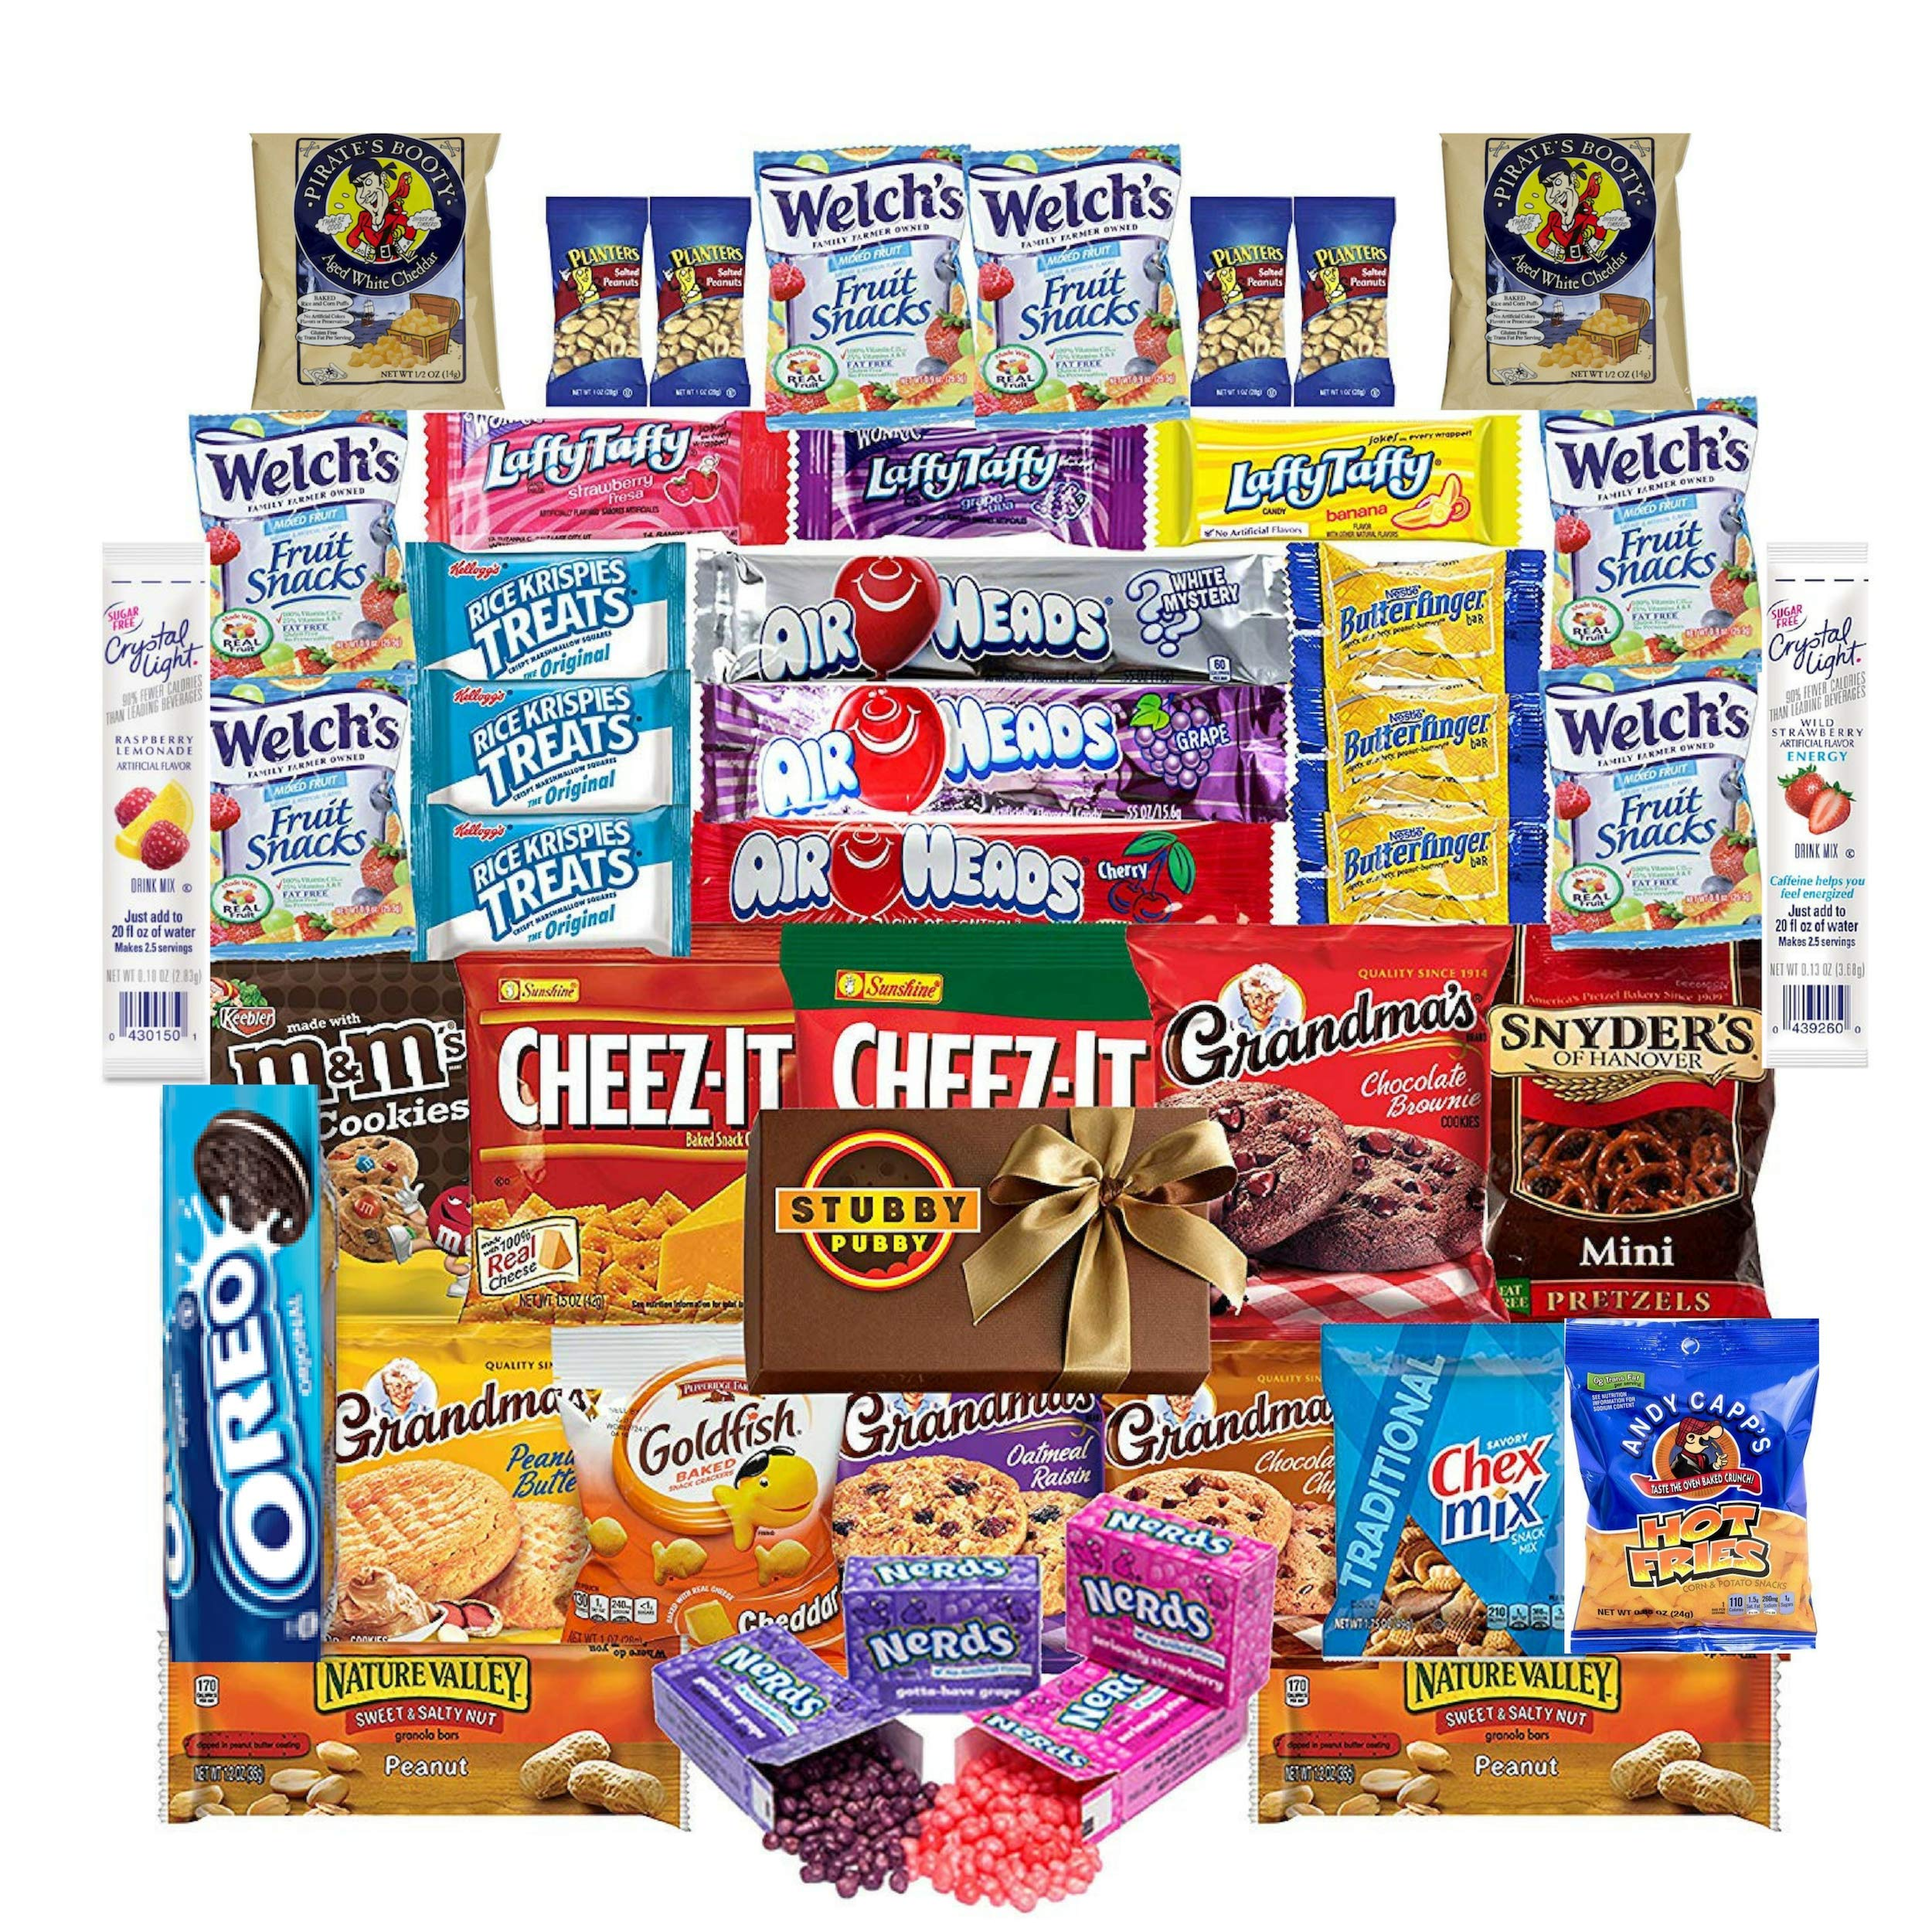 CDM product Stubby Pubby Care Package (42 Count) Snacks Cookies Bars Chips Candy Mixed Bulk Sampler Treats Ultimate Variety Gift Box Pack Assortment Basket Bundle College Students Office Fall Halloween big image